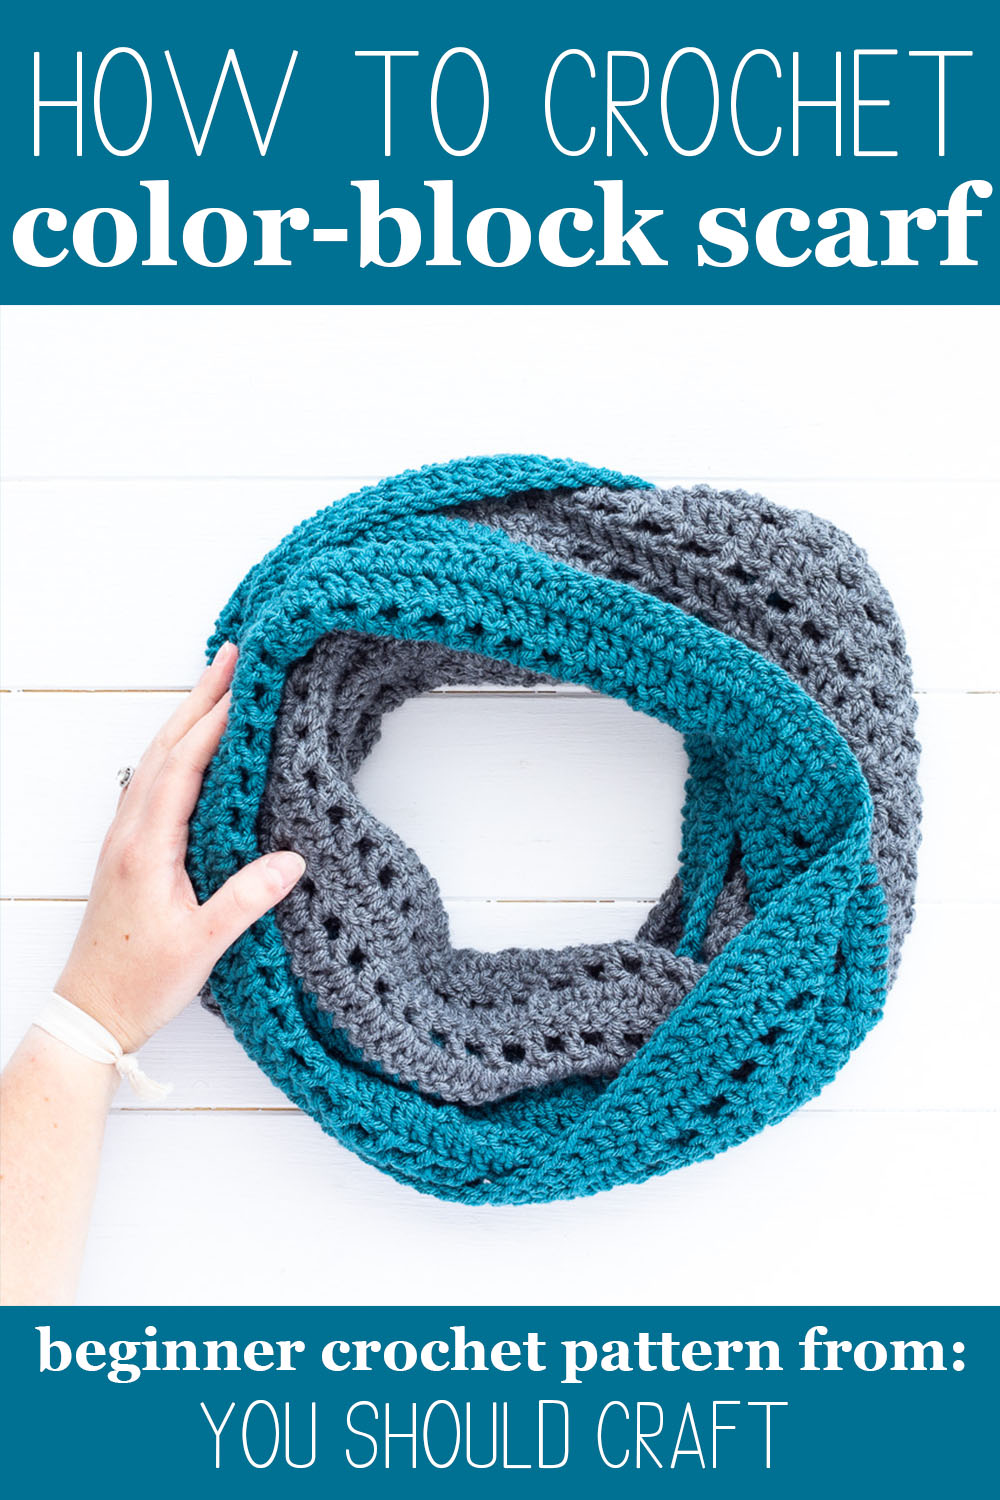 """teal and grey crocheted scarf with text overlay """"how to crochet color-block scarf - beginner crochet pattern from: you should craft"""""""